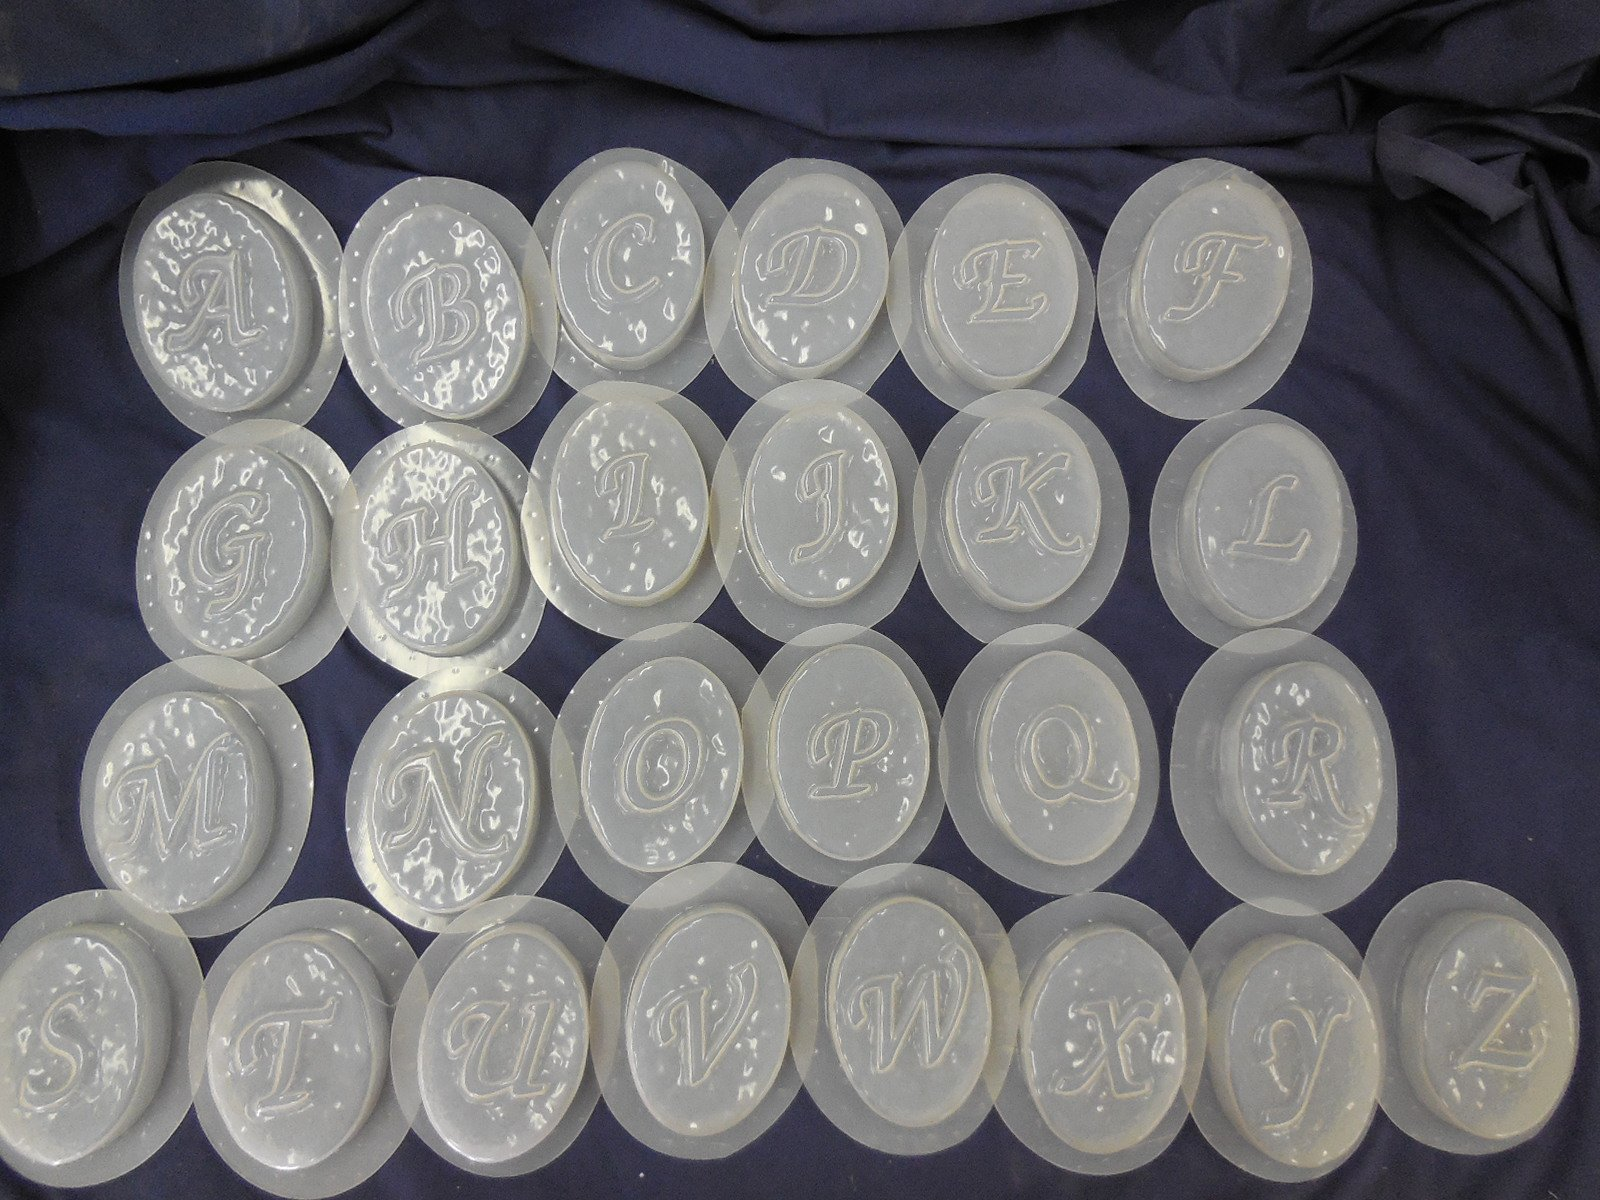 A-Z Monogram Alphabet Letter Soap Mold Set of 26 4709 by Mold Creations